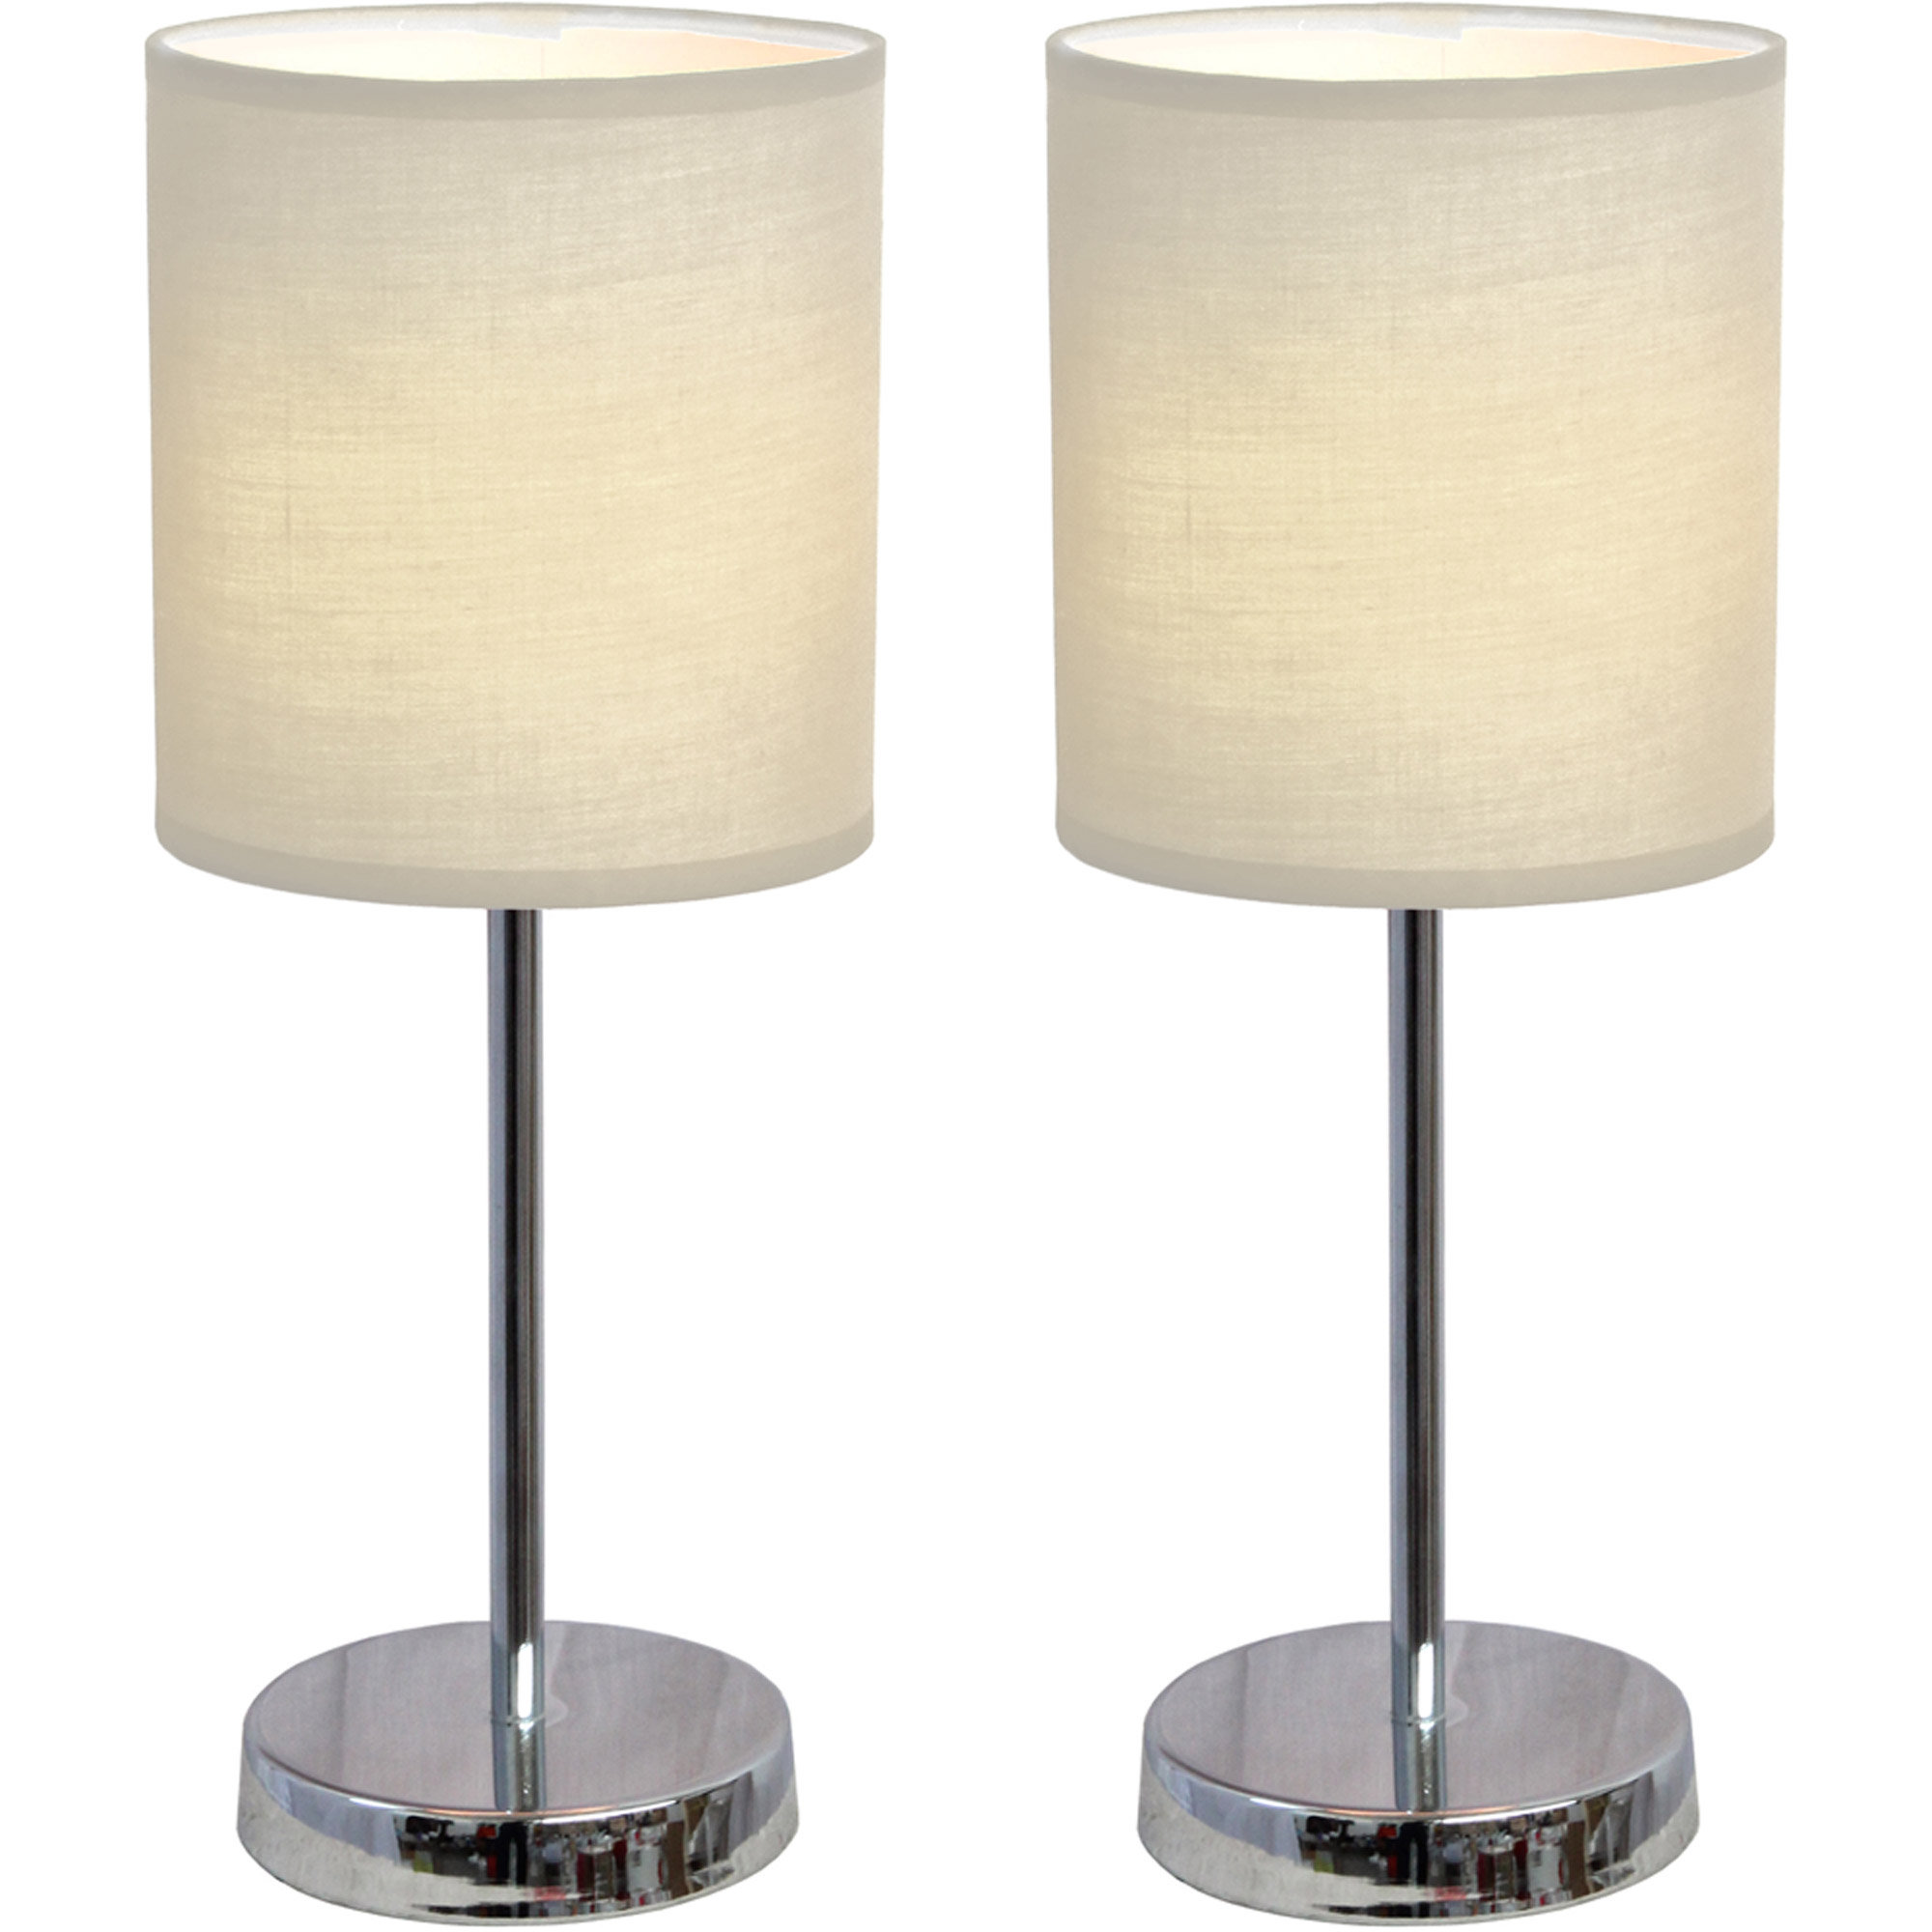 Walmart crafts and fabrics - Simple Designs Chrome Mini Basic Table Lamp With Fabric Shade 2 Pack Set Walmart Com